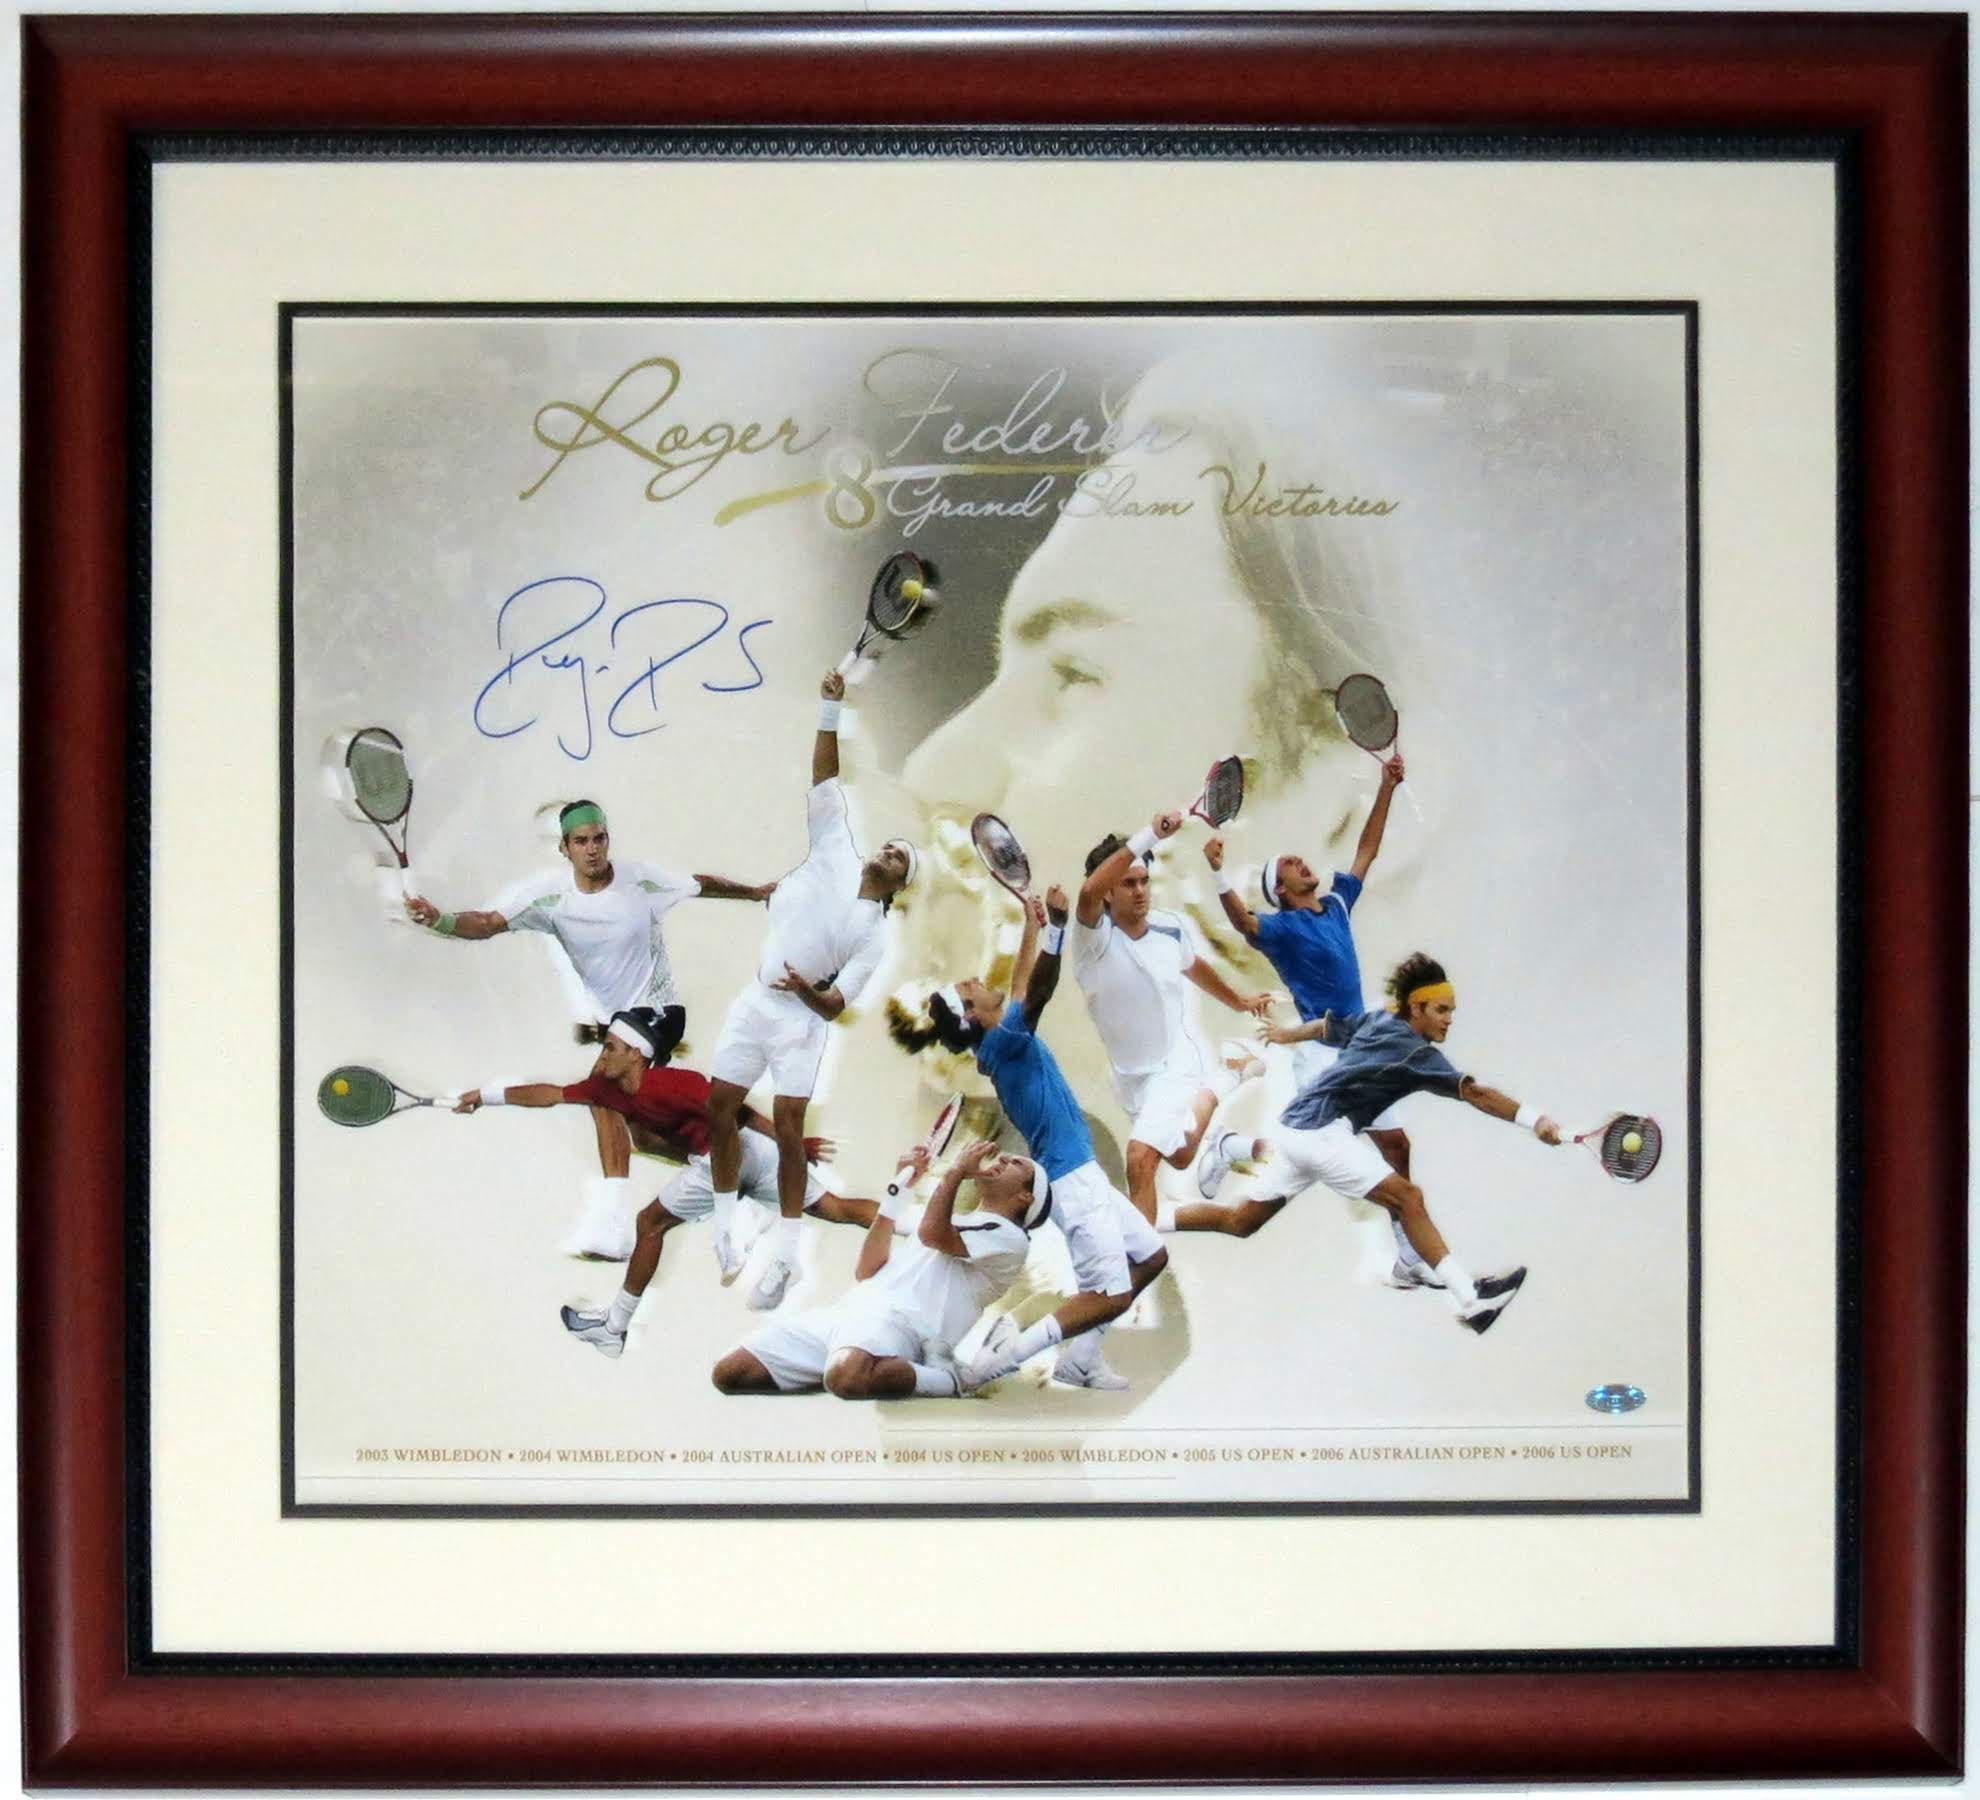 Roger Federer Signed 16x20 Photo - Steiner Sports COA Authenticated - Professionally Framed